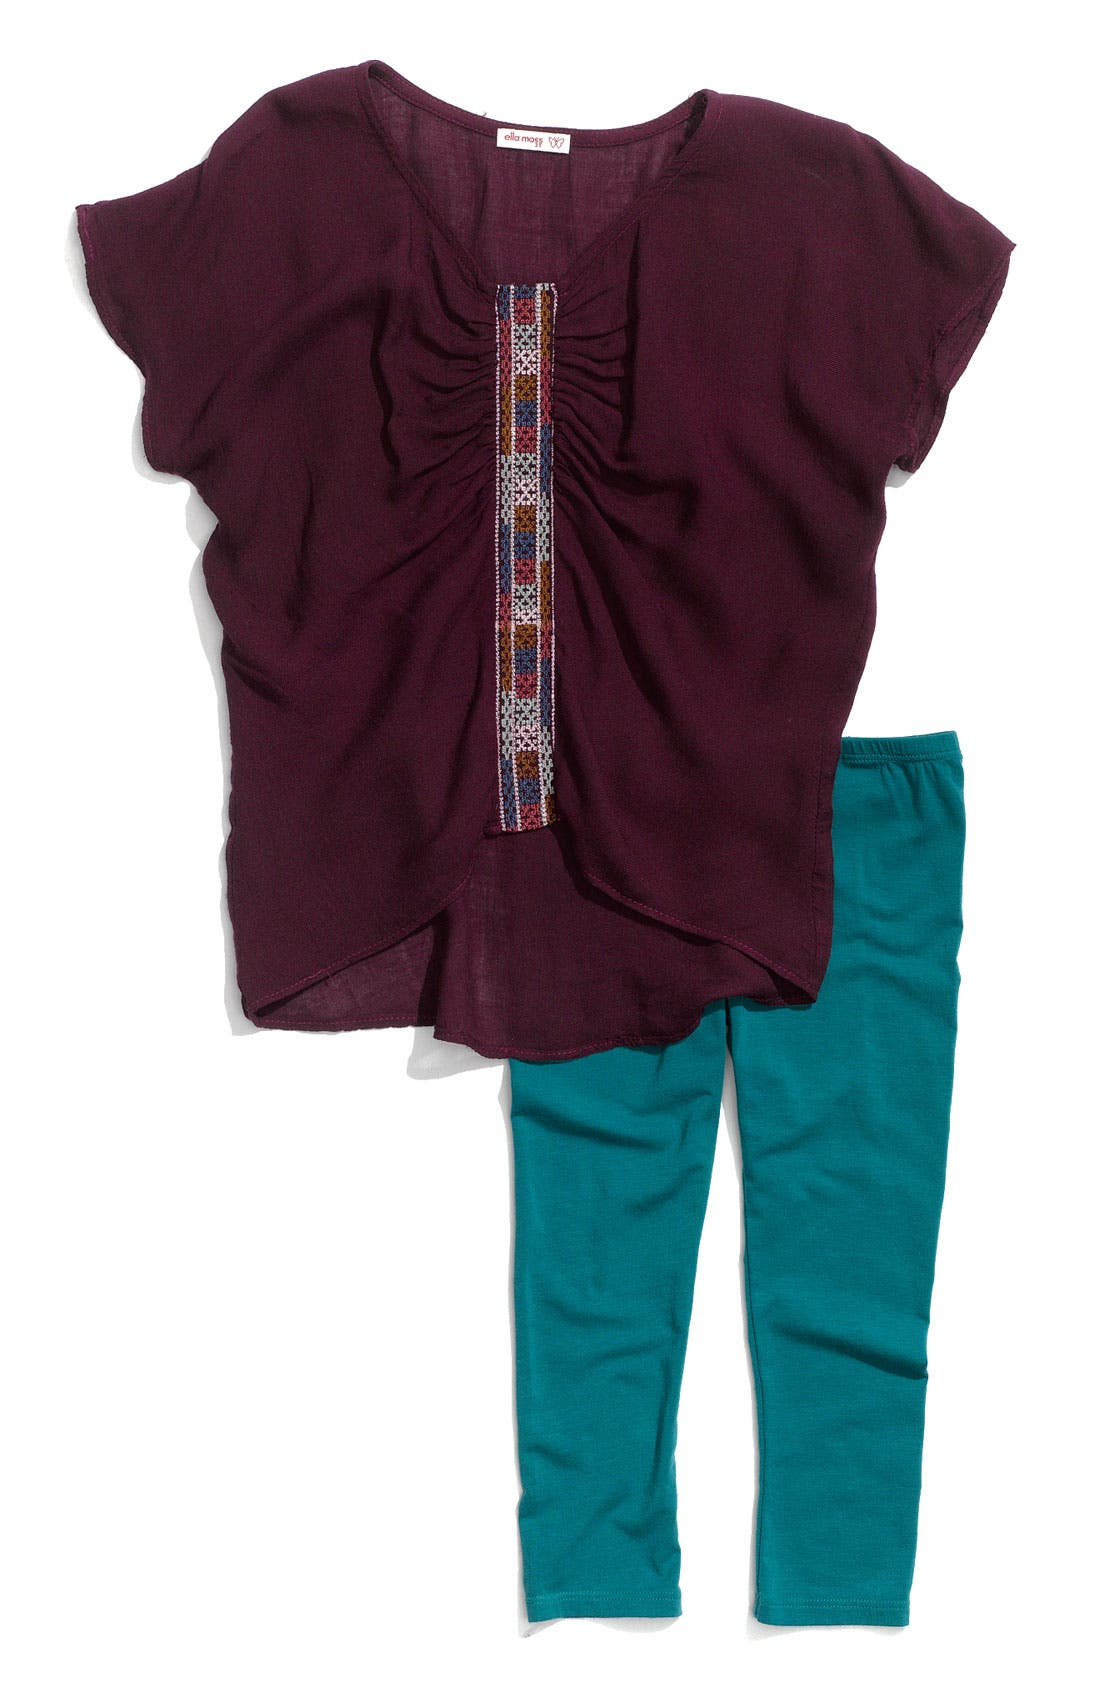 Alternate Image 1 Selected - Little Ella 'Surrey' Tunic & Leggings Set (Toddler)